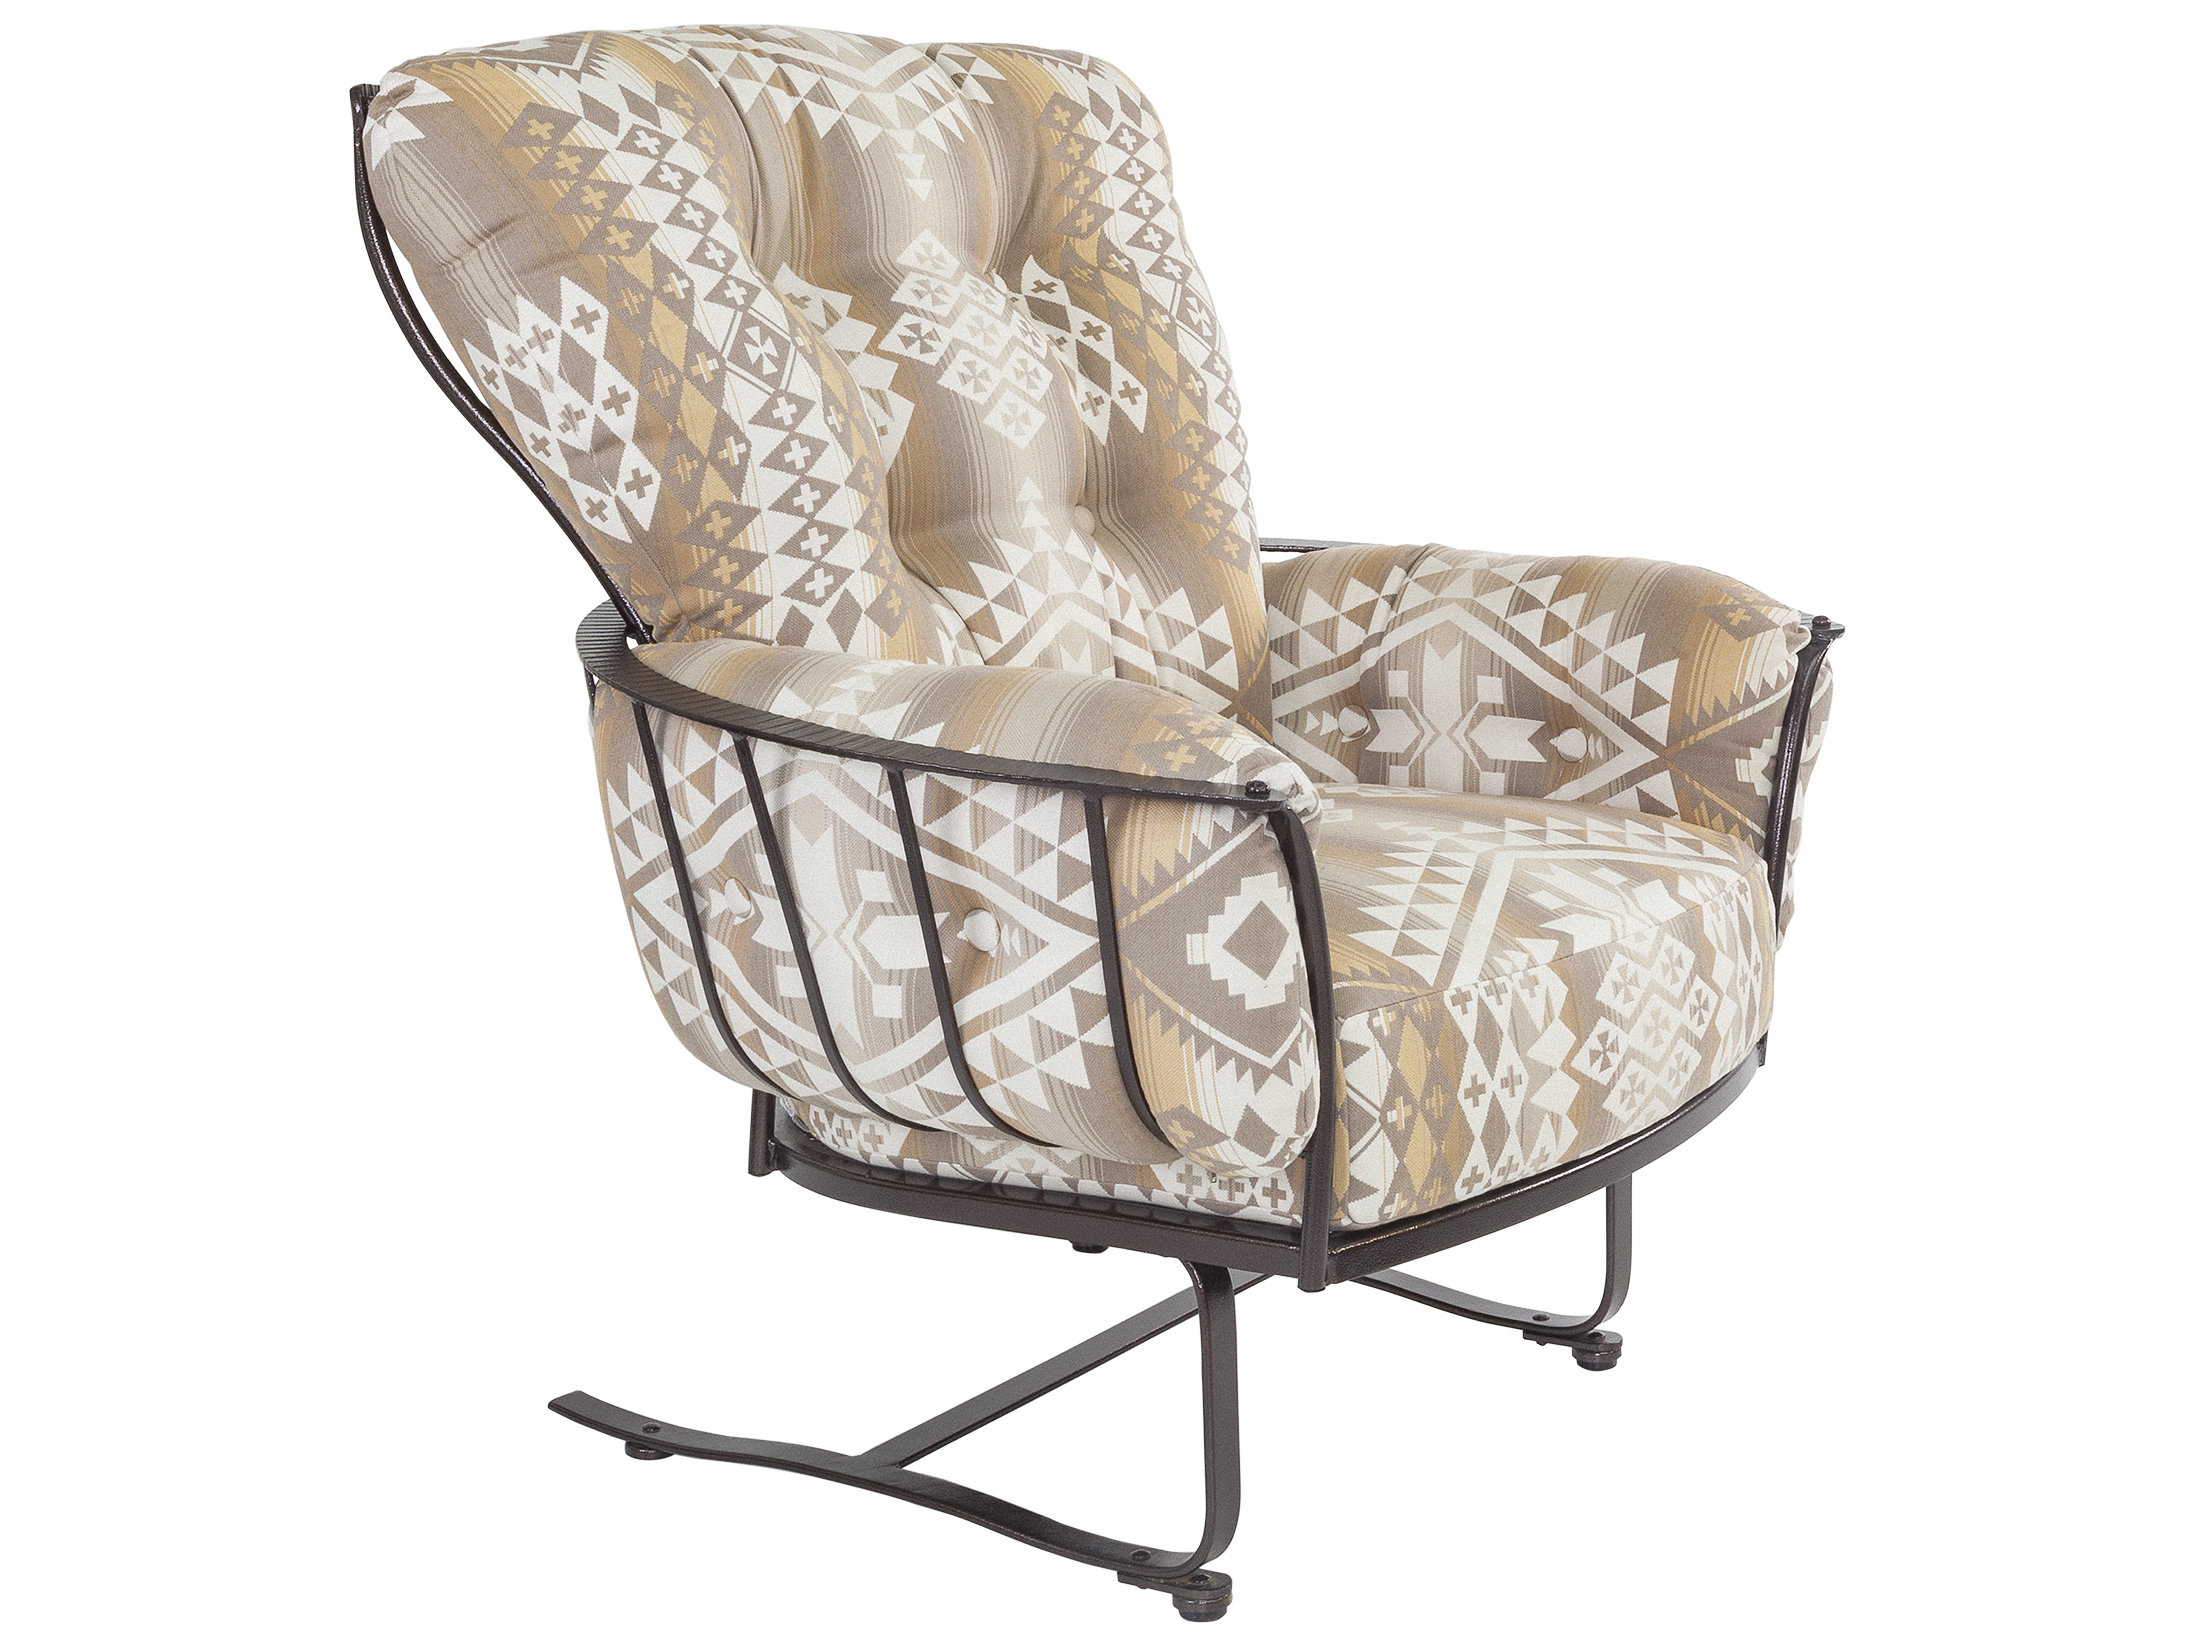 Sensational Ow Lee Pendleton Copper Canyon Wrought Iron Monterra Spring Lounge Chair In Canyon Lands Desert Andrewgaddart Wooden Chair Designs For Living Room Andrewgaddartcom